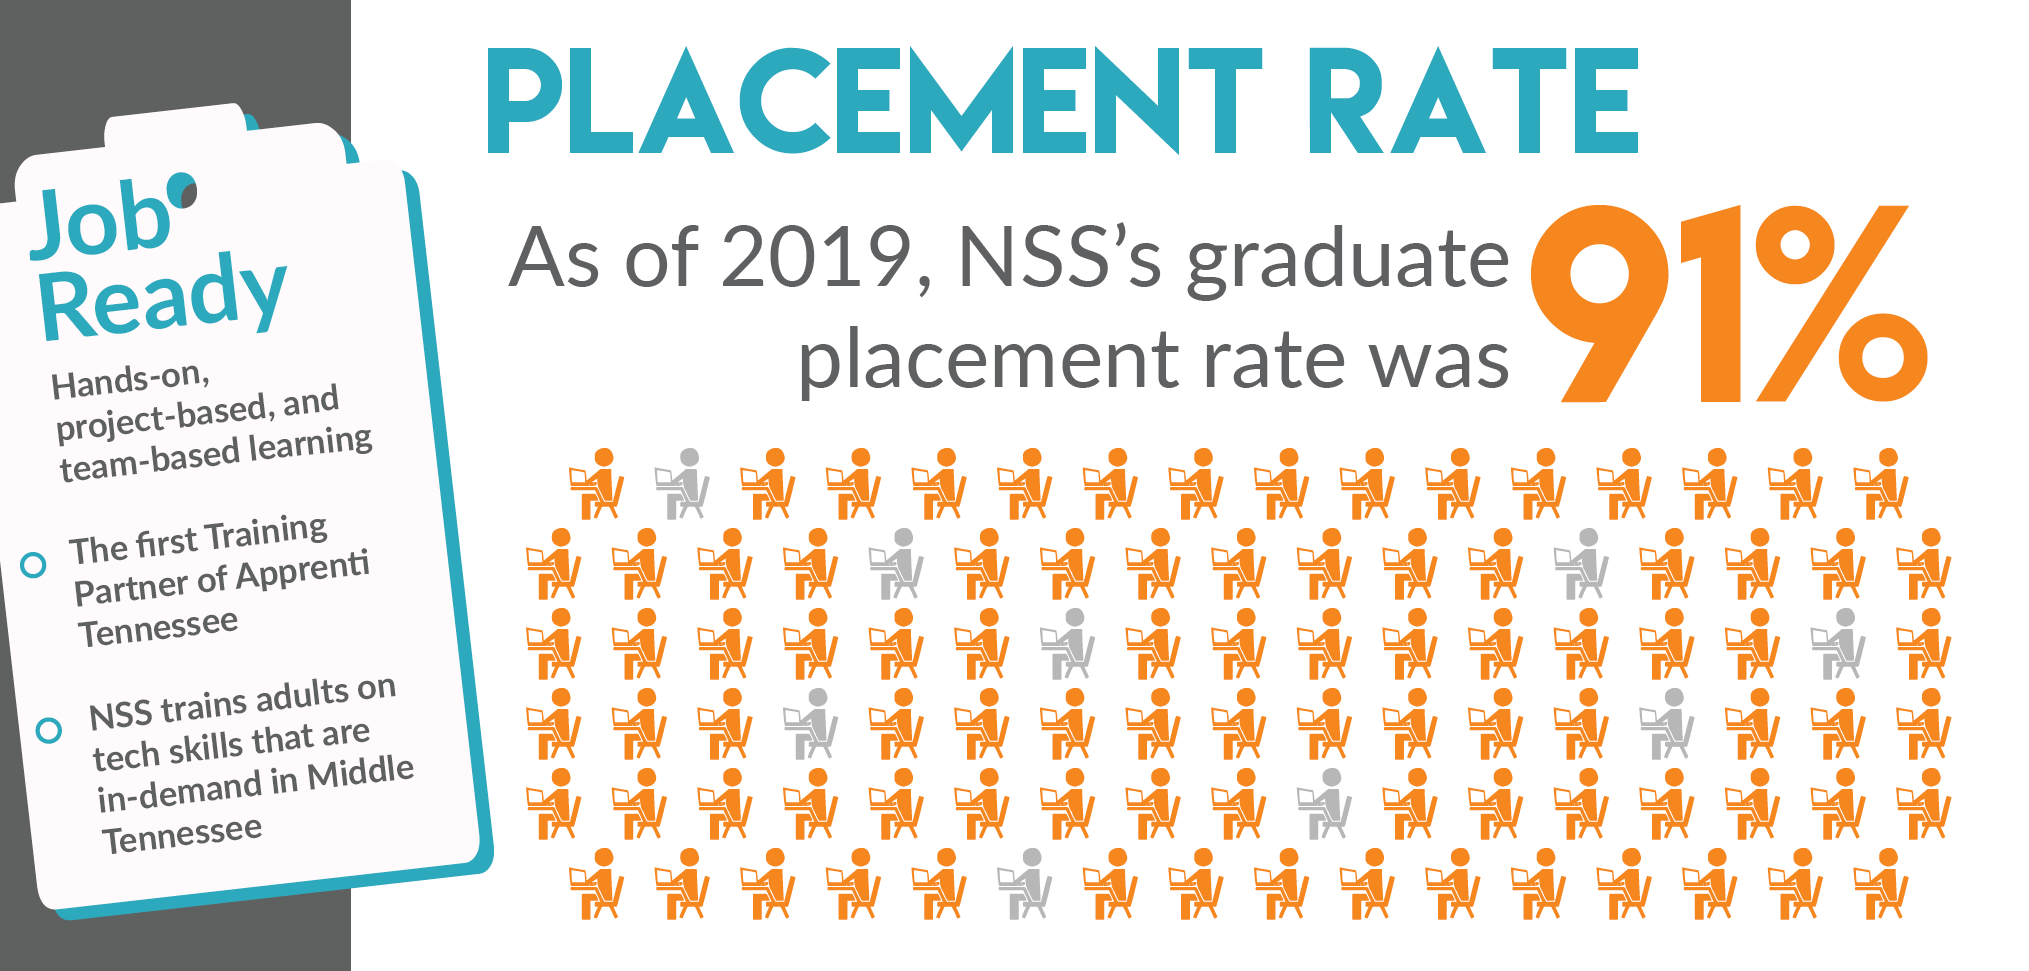 Placement Rate - As of 2019, NSS's graduate placement rate was 91%